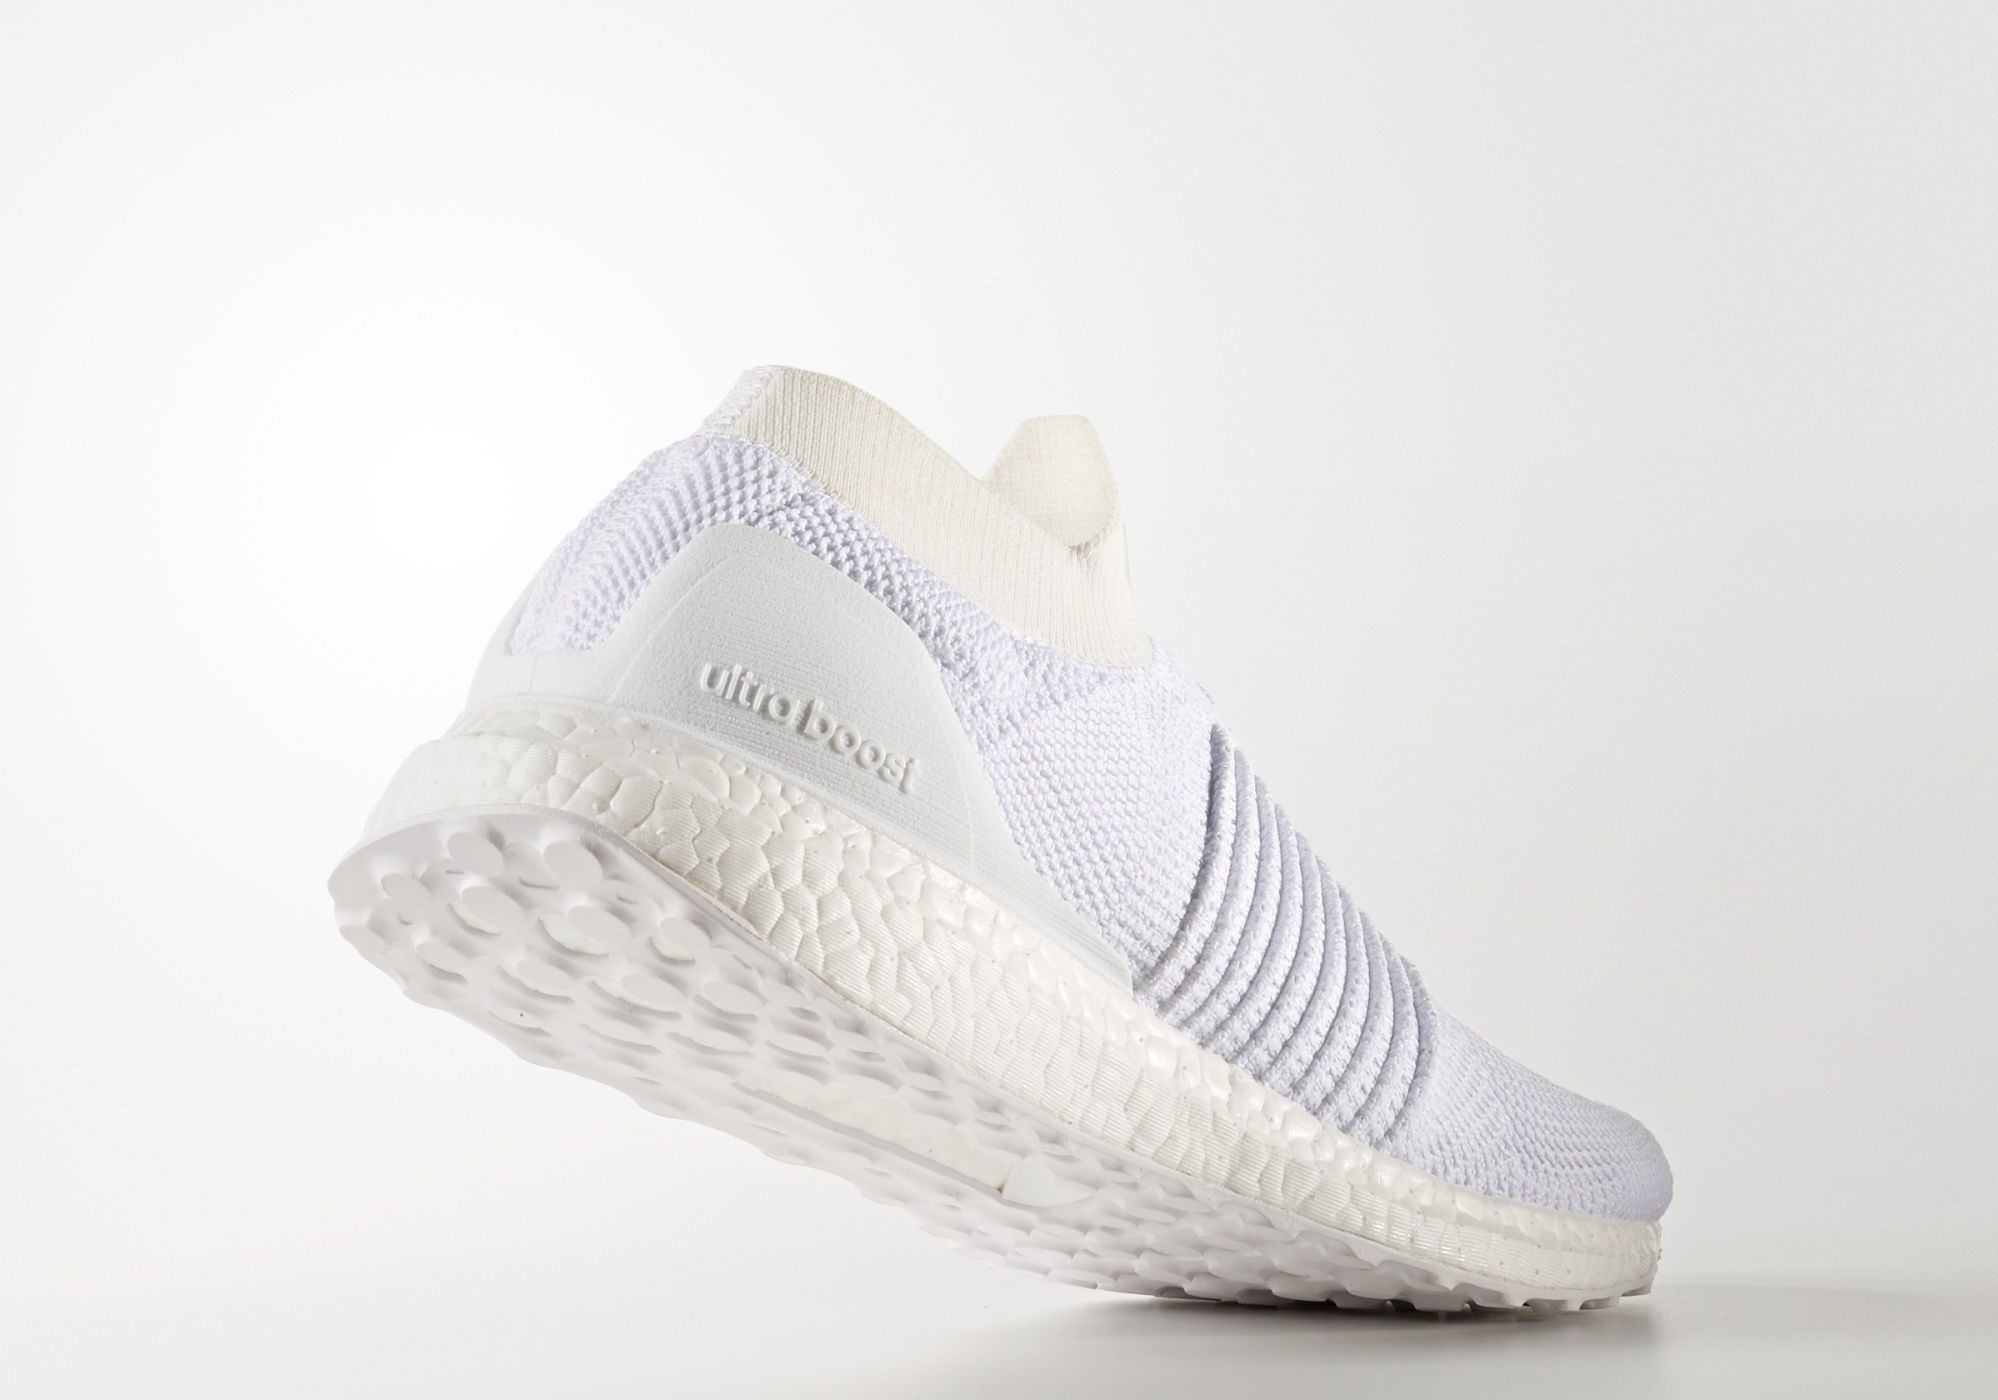 5d450f4ffe459 The adidas UltraBoost Goes Laceless in Triple White for Summer ...